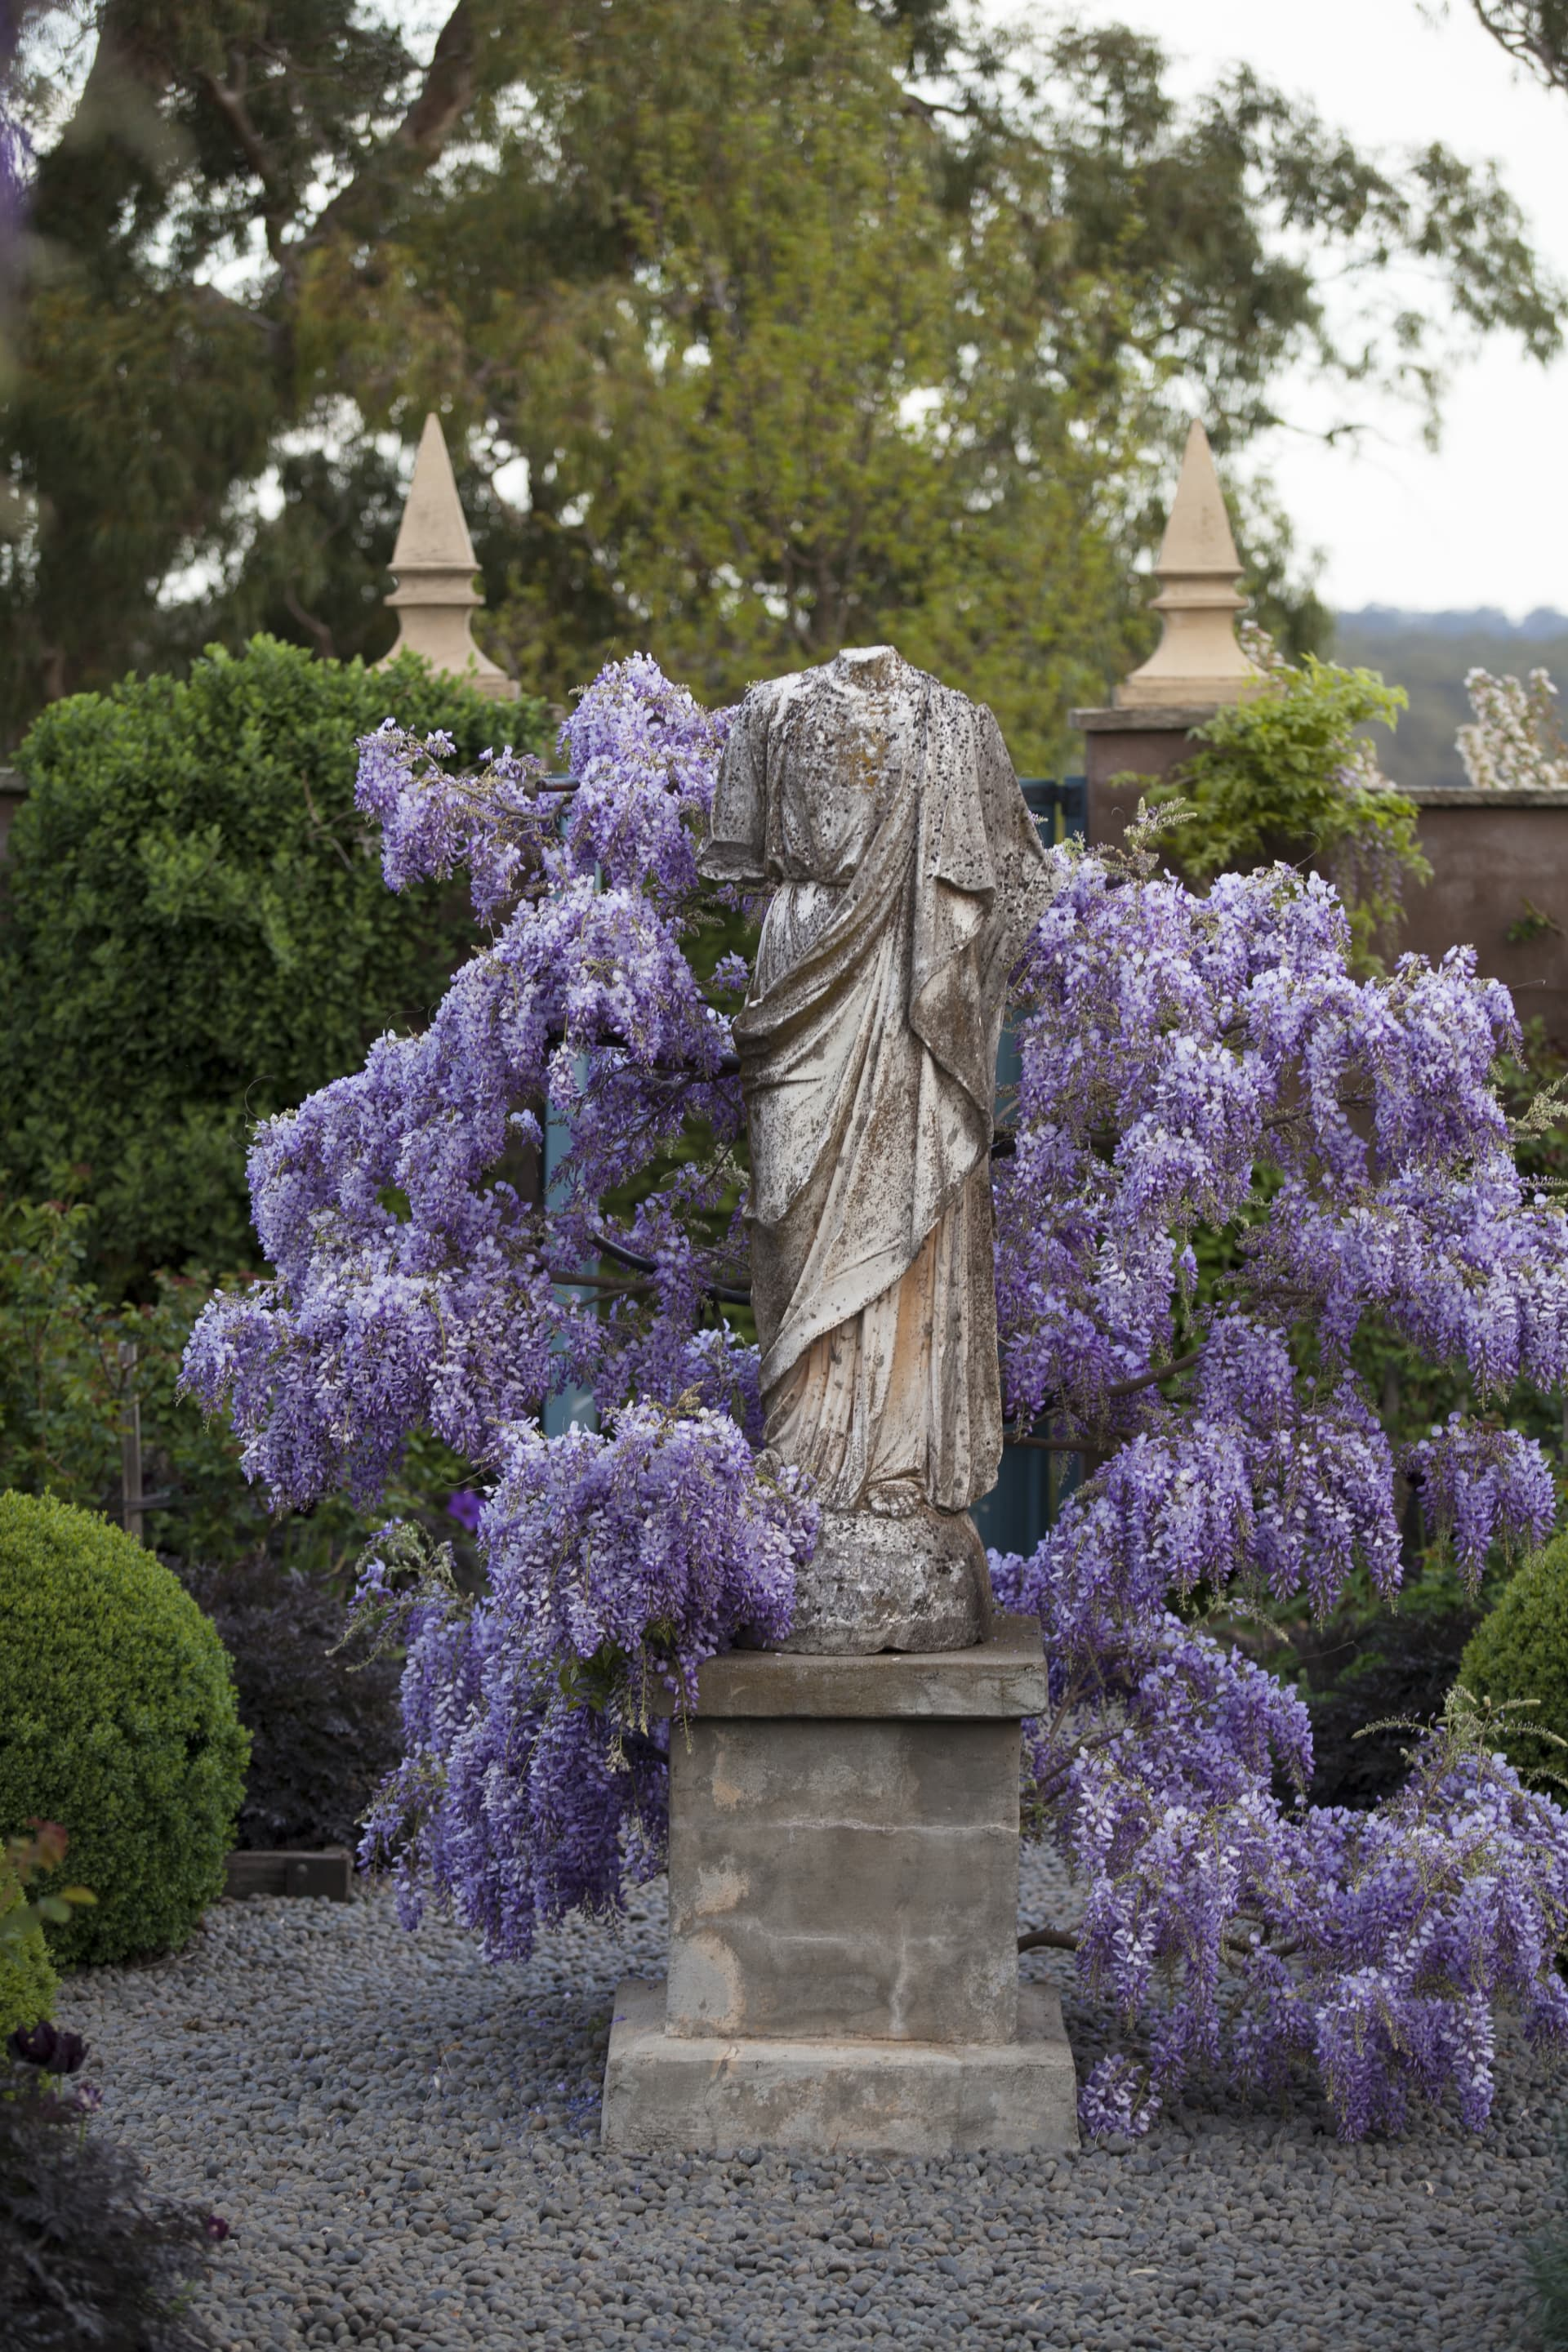 The wisteria cloaked statue in the walled rose garden. Looking resplendent in covering of tresses of wisteria. Clever pruning of the vine has created this center point to the rose garden.